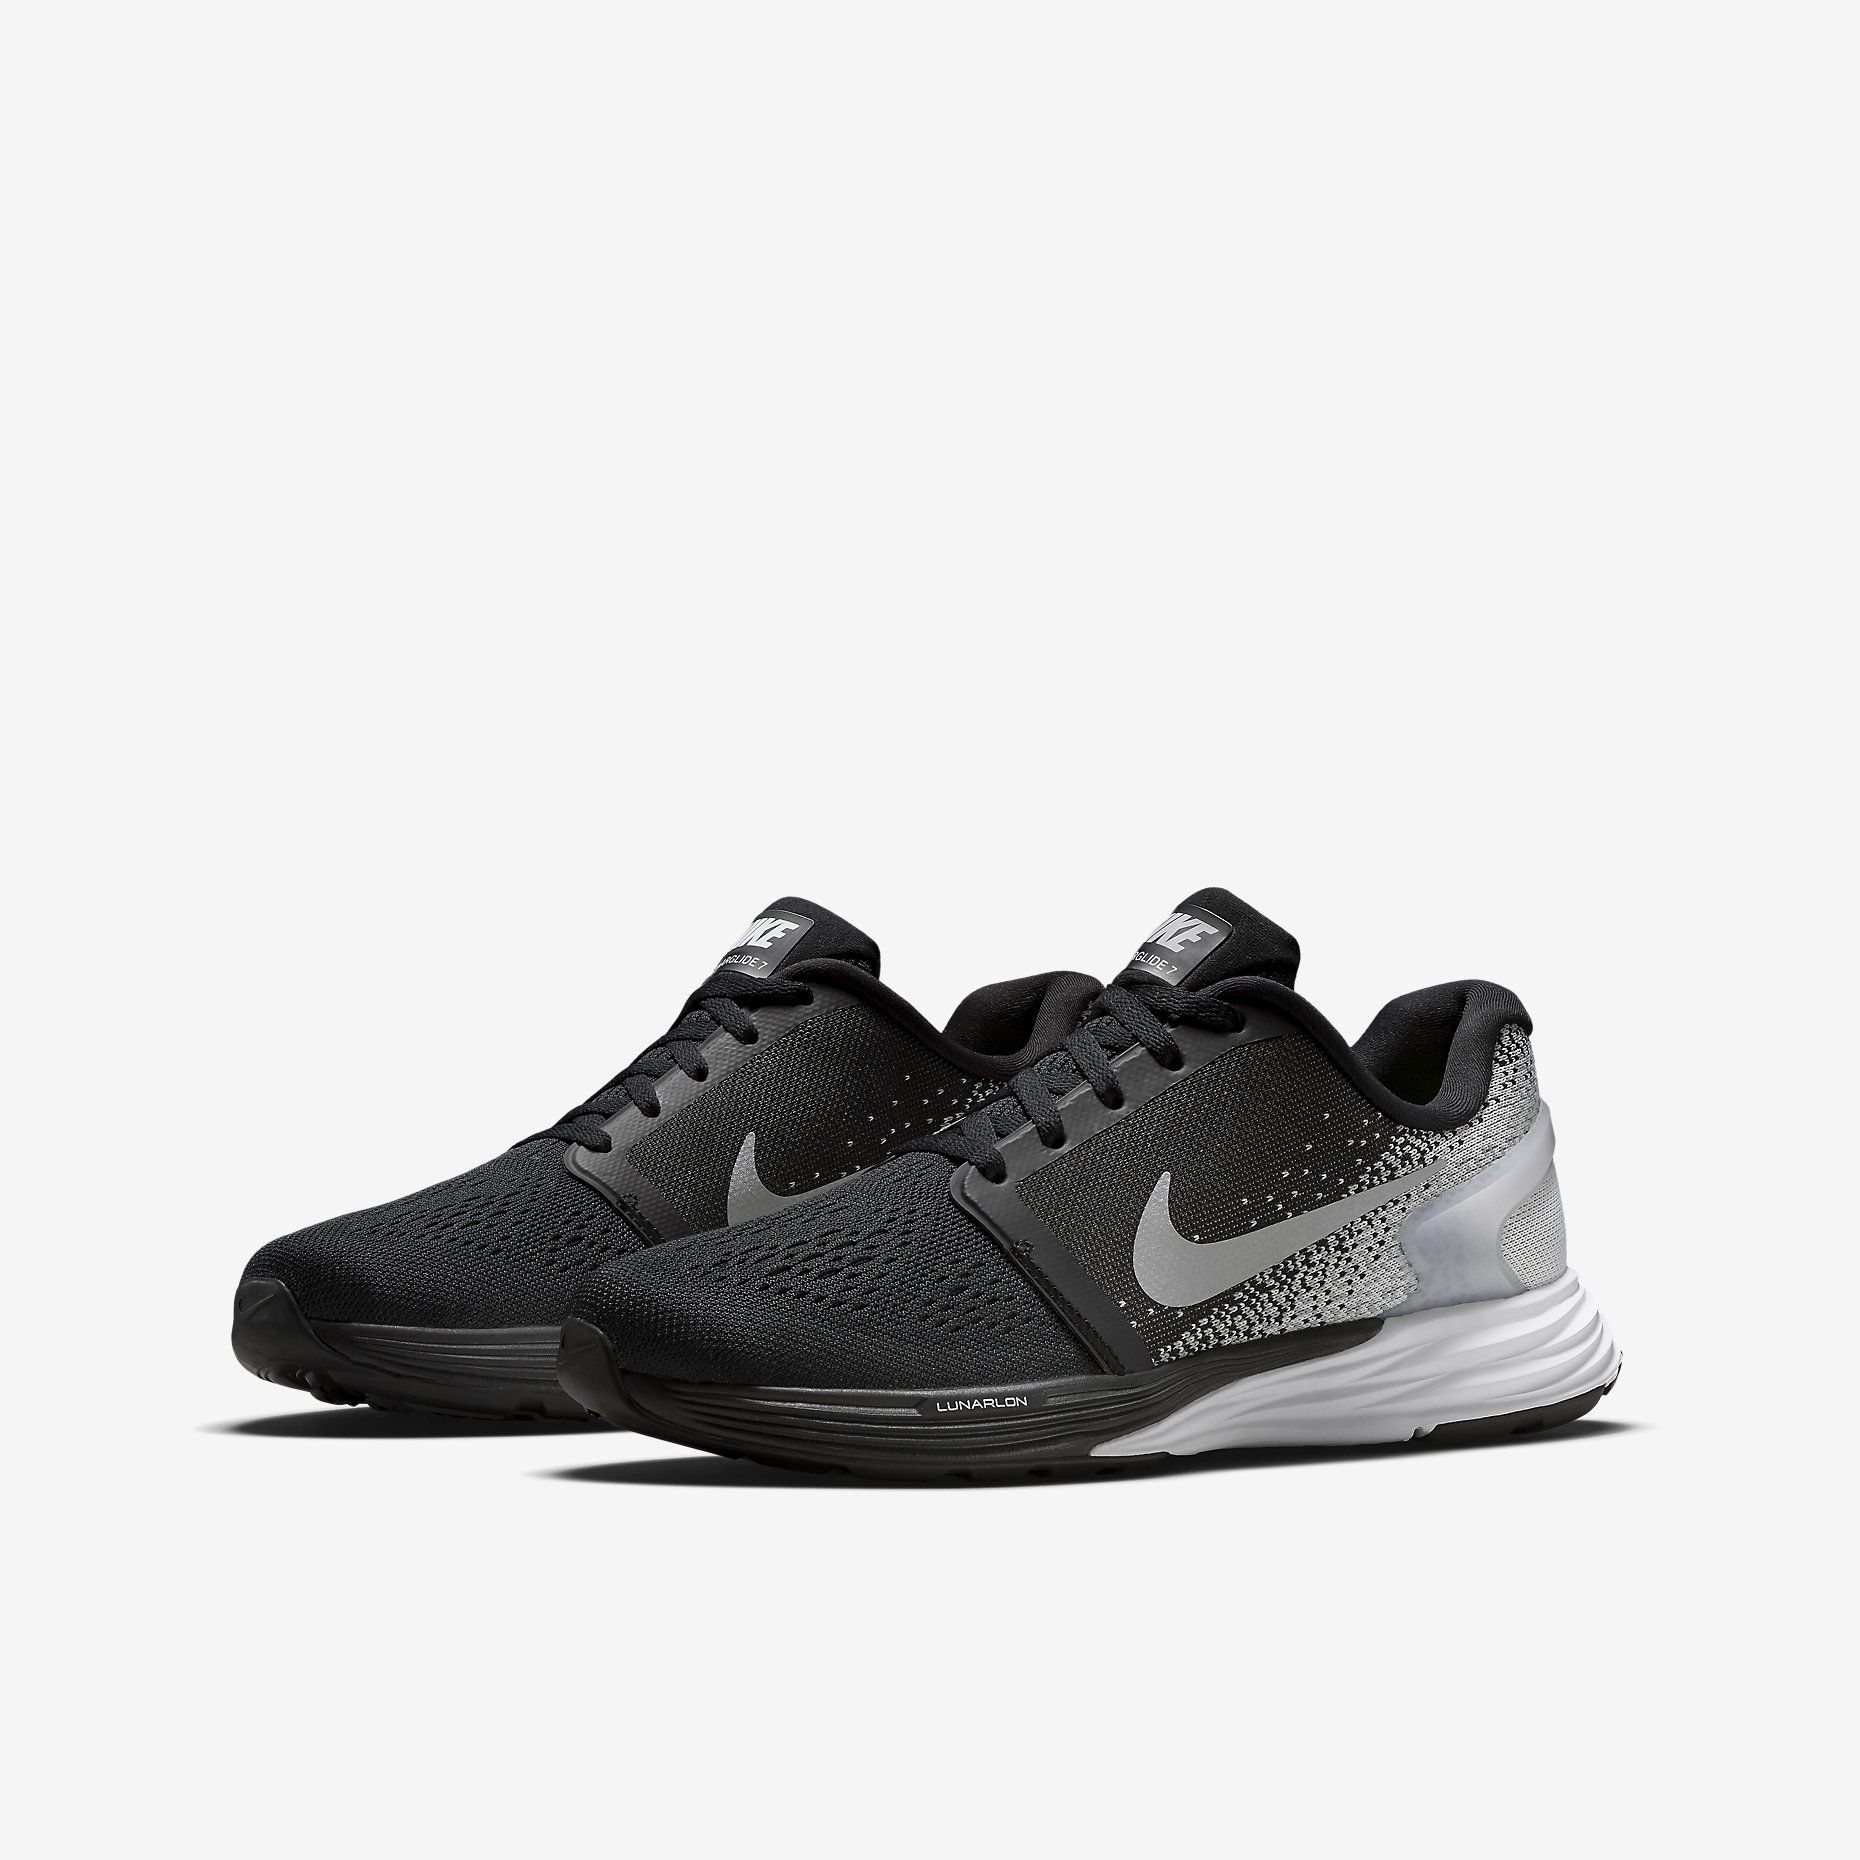 timeless design 1ad7a 34a9e ... cheapest nike lunarglide 7 running shoes for kids 35.5 to 40. nike.  ca2cb 3789a promo code ...